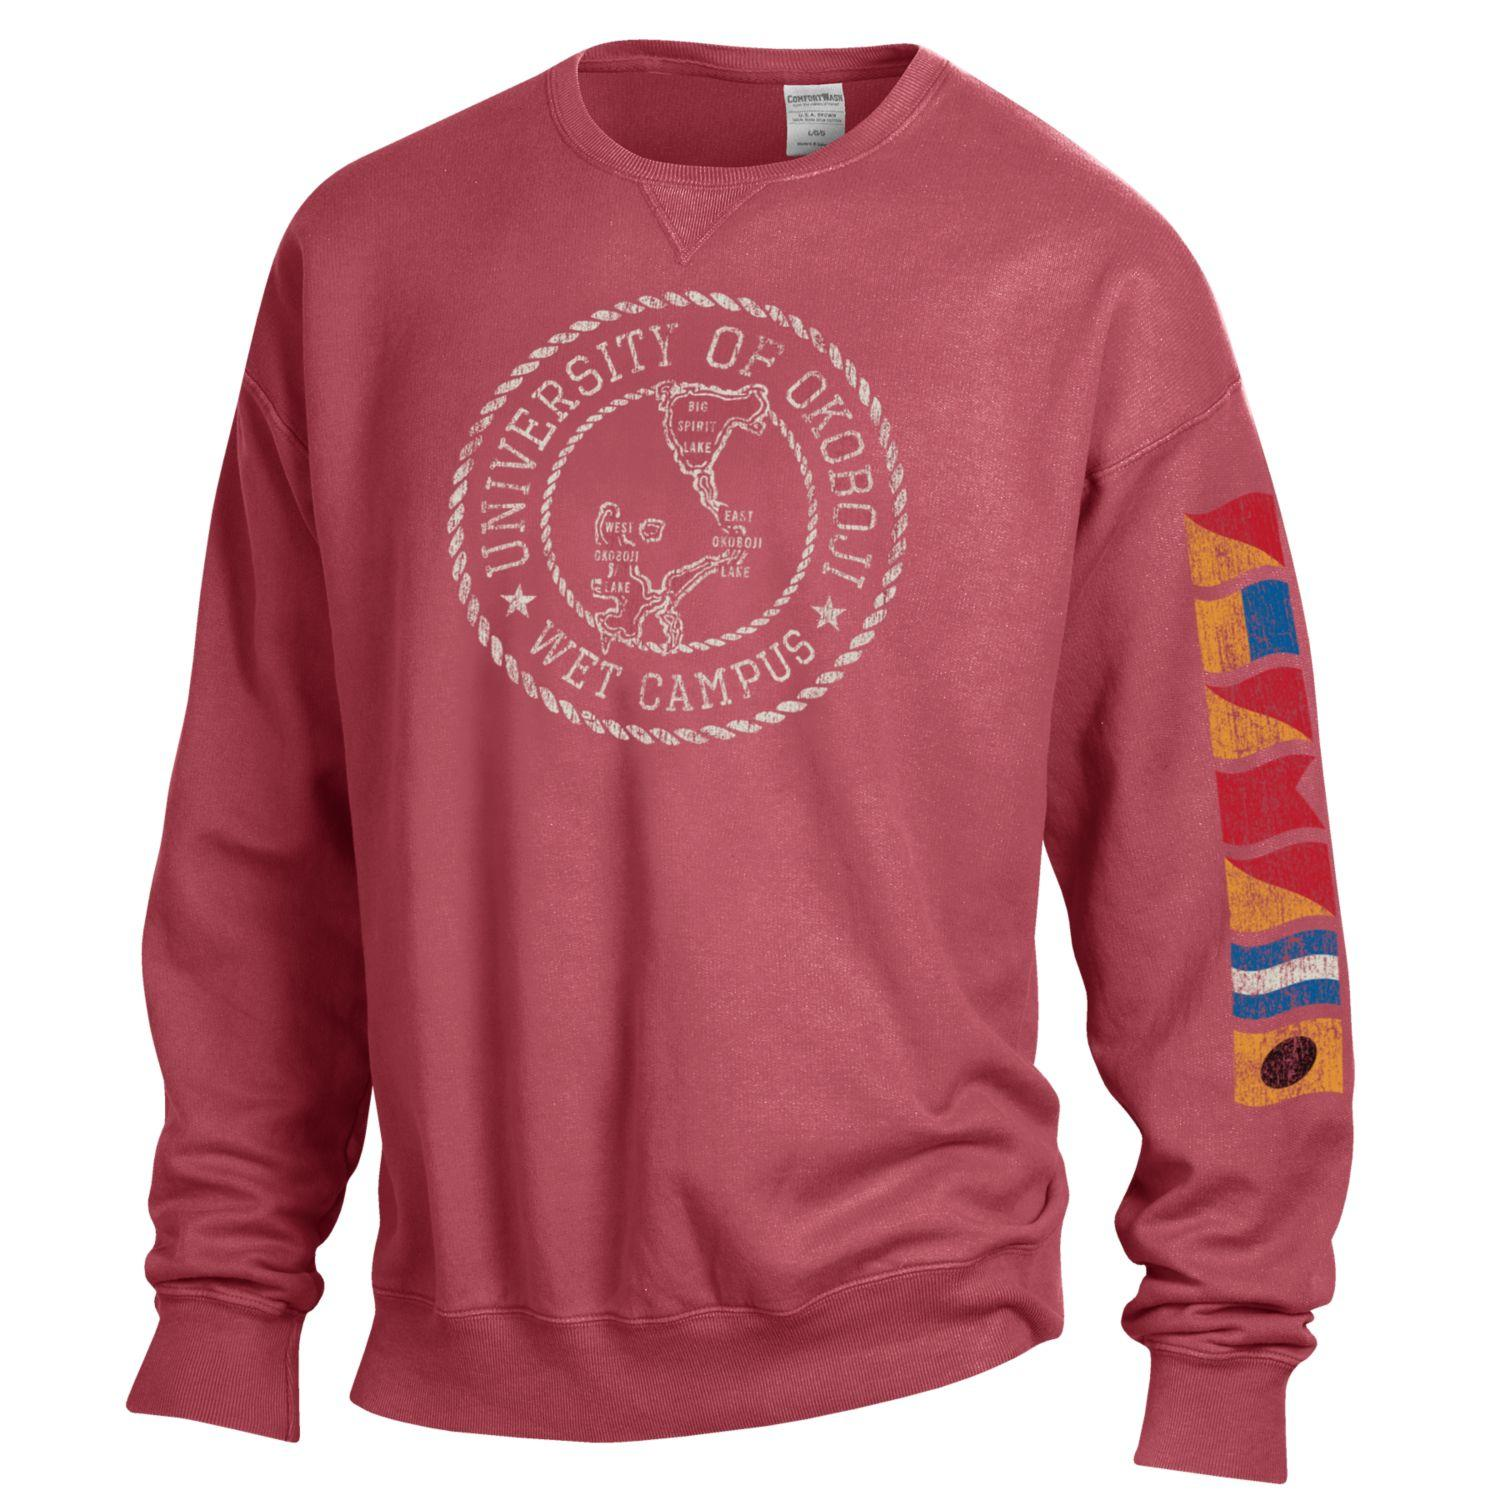 Lake Okoboji Campus Garment Dyed Crew - Crimson